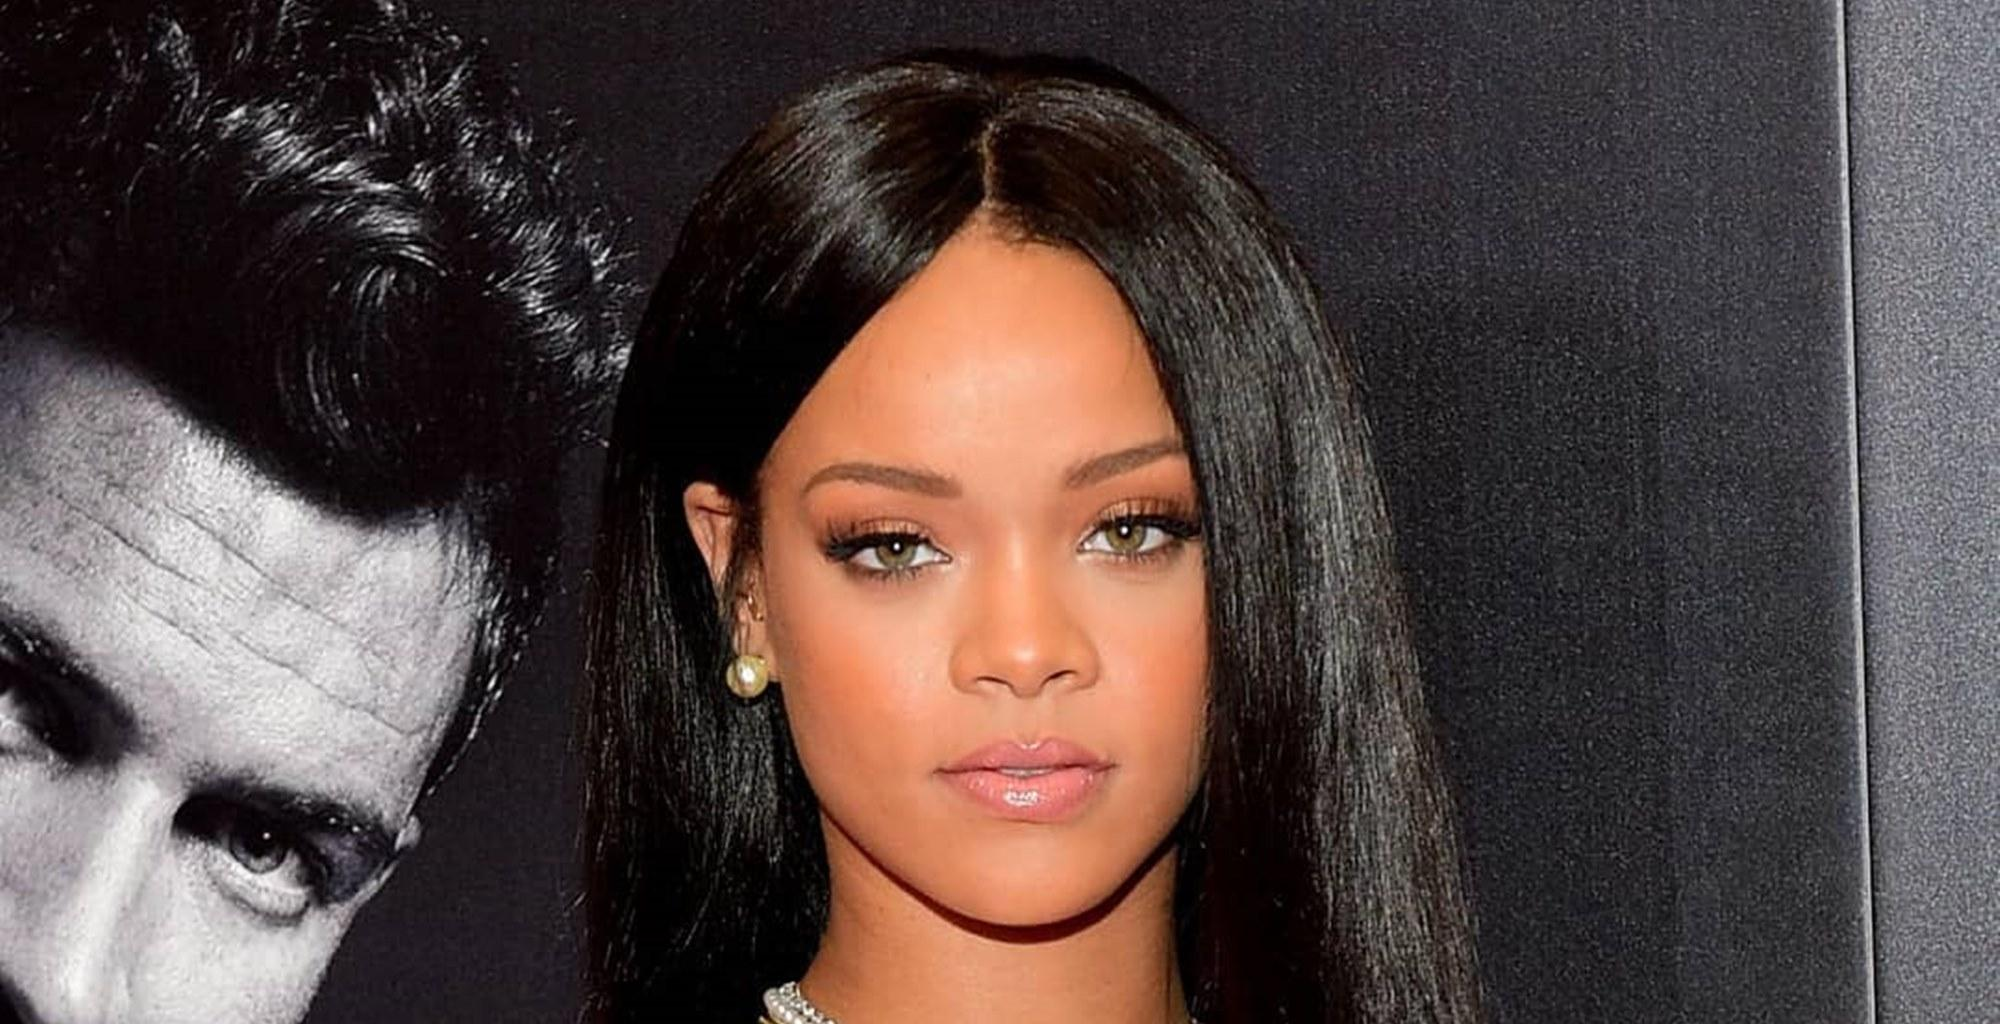 Rihanna Leaves Nothing To The Imagination In Gorgeous Spring Savage x Fenty Lingerie Photos Amid Reports Chris Brown Has Finally Taken A Surprising Decision About Her